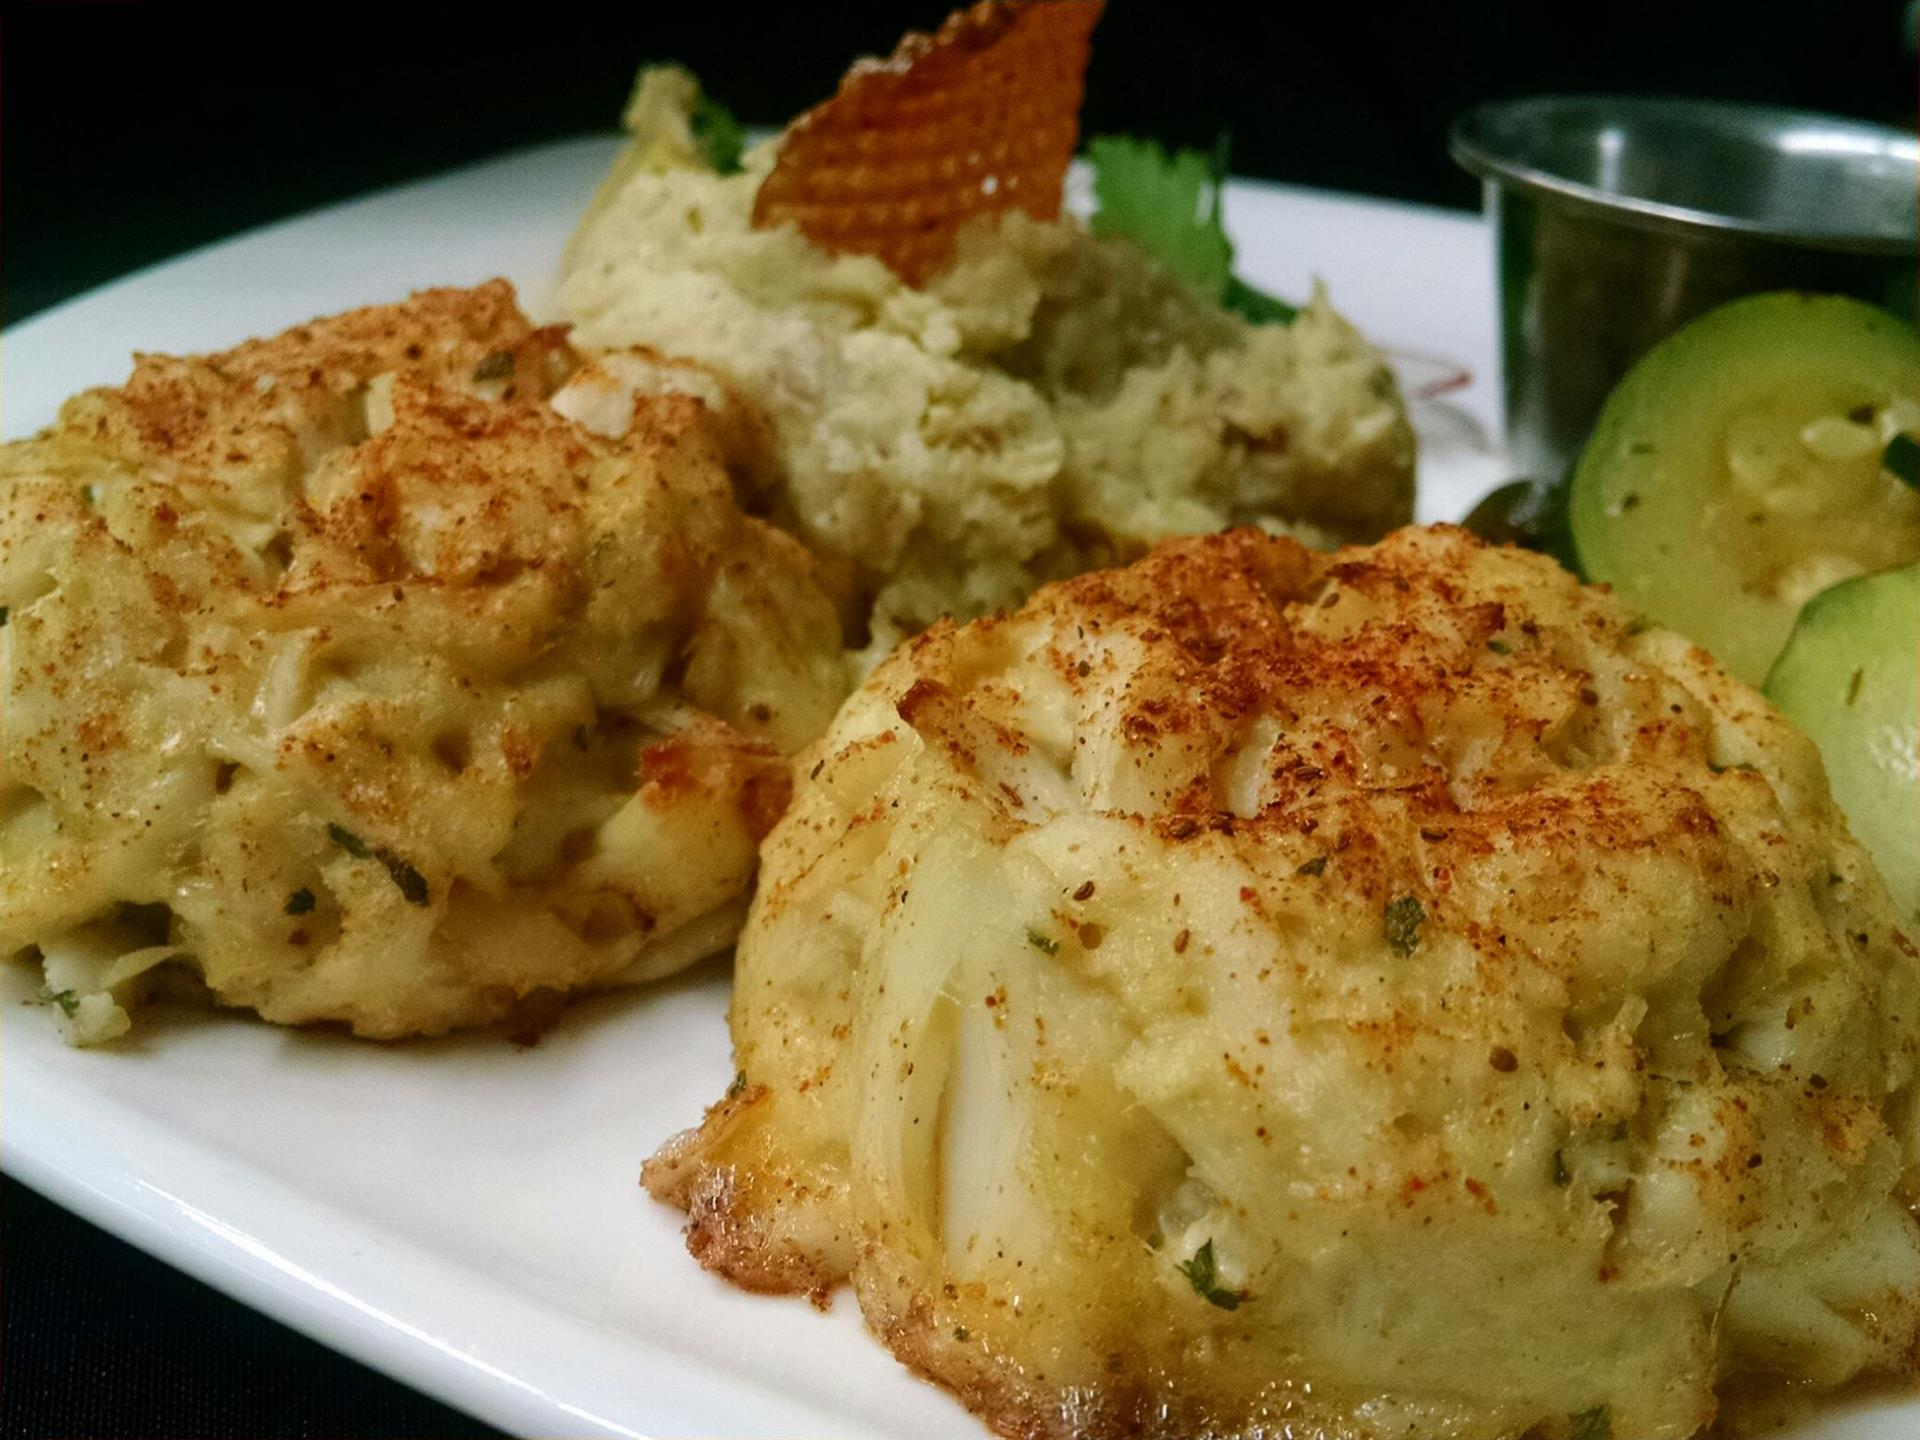 Jumbo and lump crabmeat in a classic mild sauce, seasoned lightly and broiled, served with homemade tartar sauce.